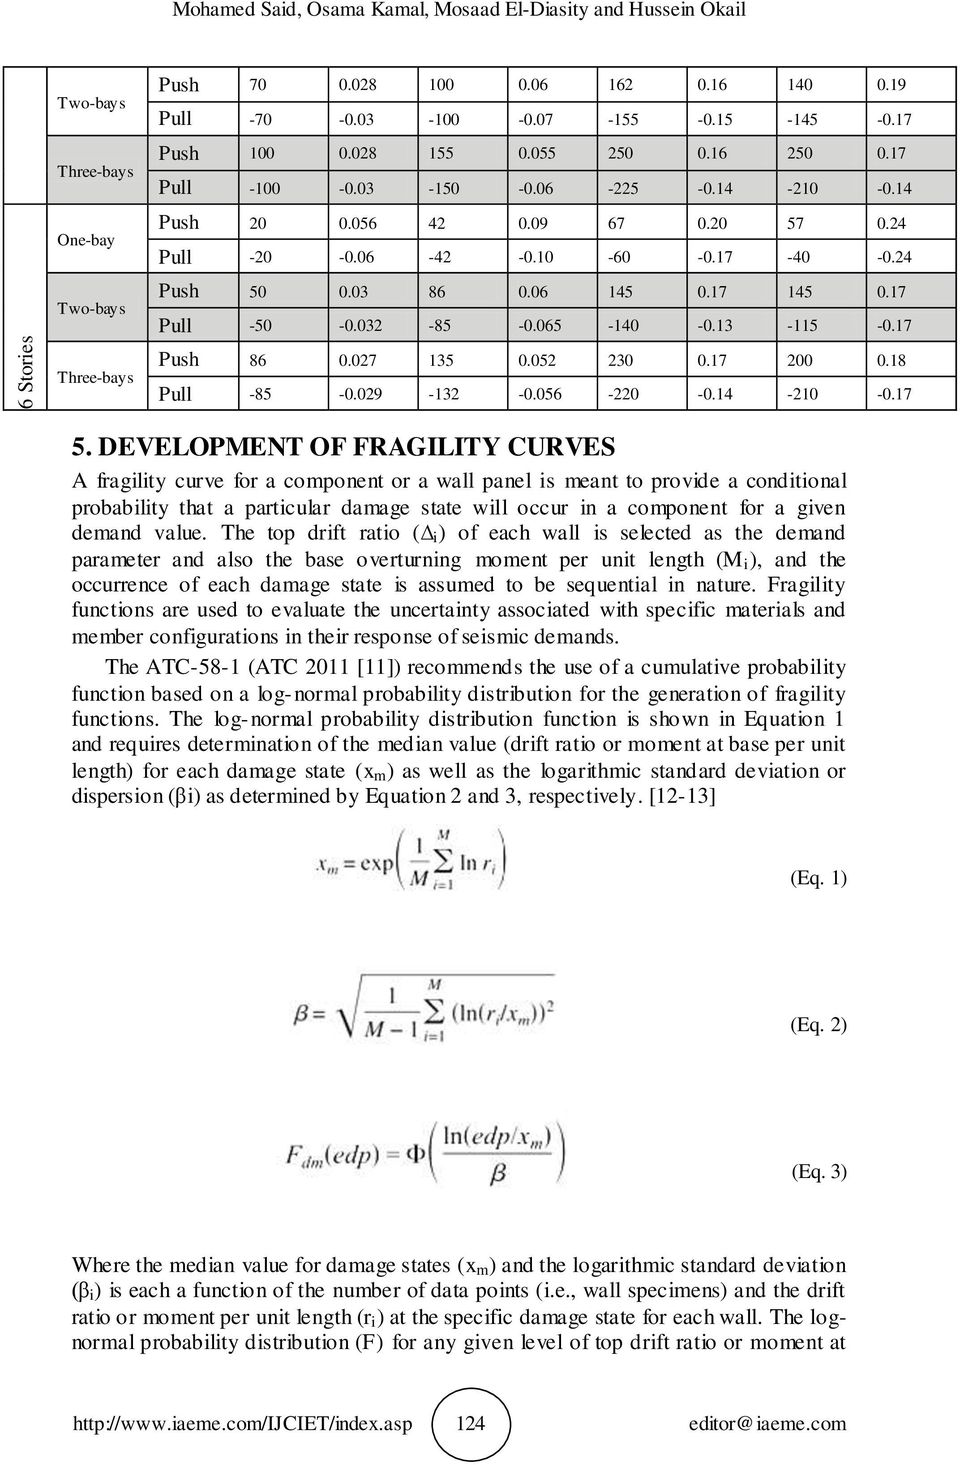 DEVELOPMENT OF FRAGILITY CURVES A fragility curve for a component or a wall panel is meant to provide a conditional probability that a particular damage state will occur in a component for a given